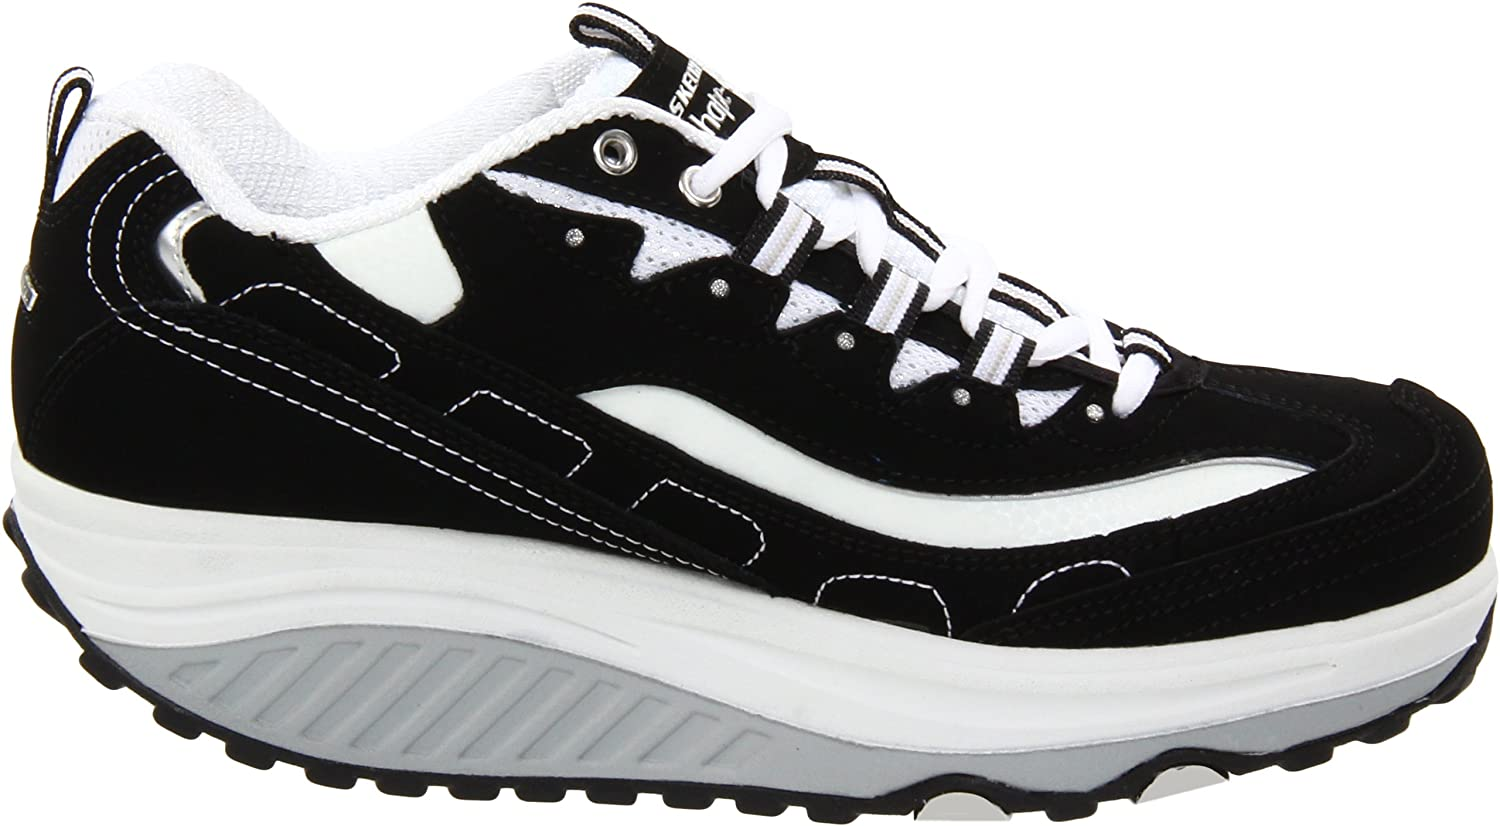 Skechers Women's Shape Ups B001SN8DIO Strength Fitness Walking Sneaker B001SN8DIO Ups 8 B(M) US|Black/White 8ed85a